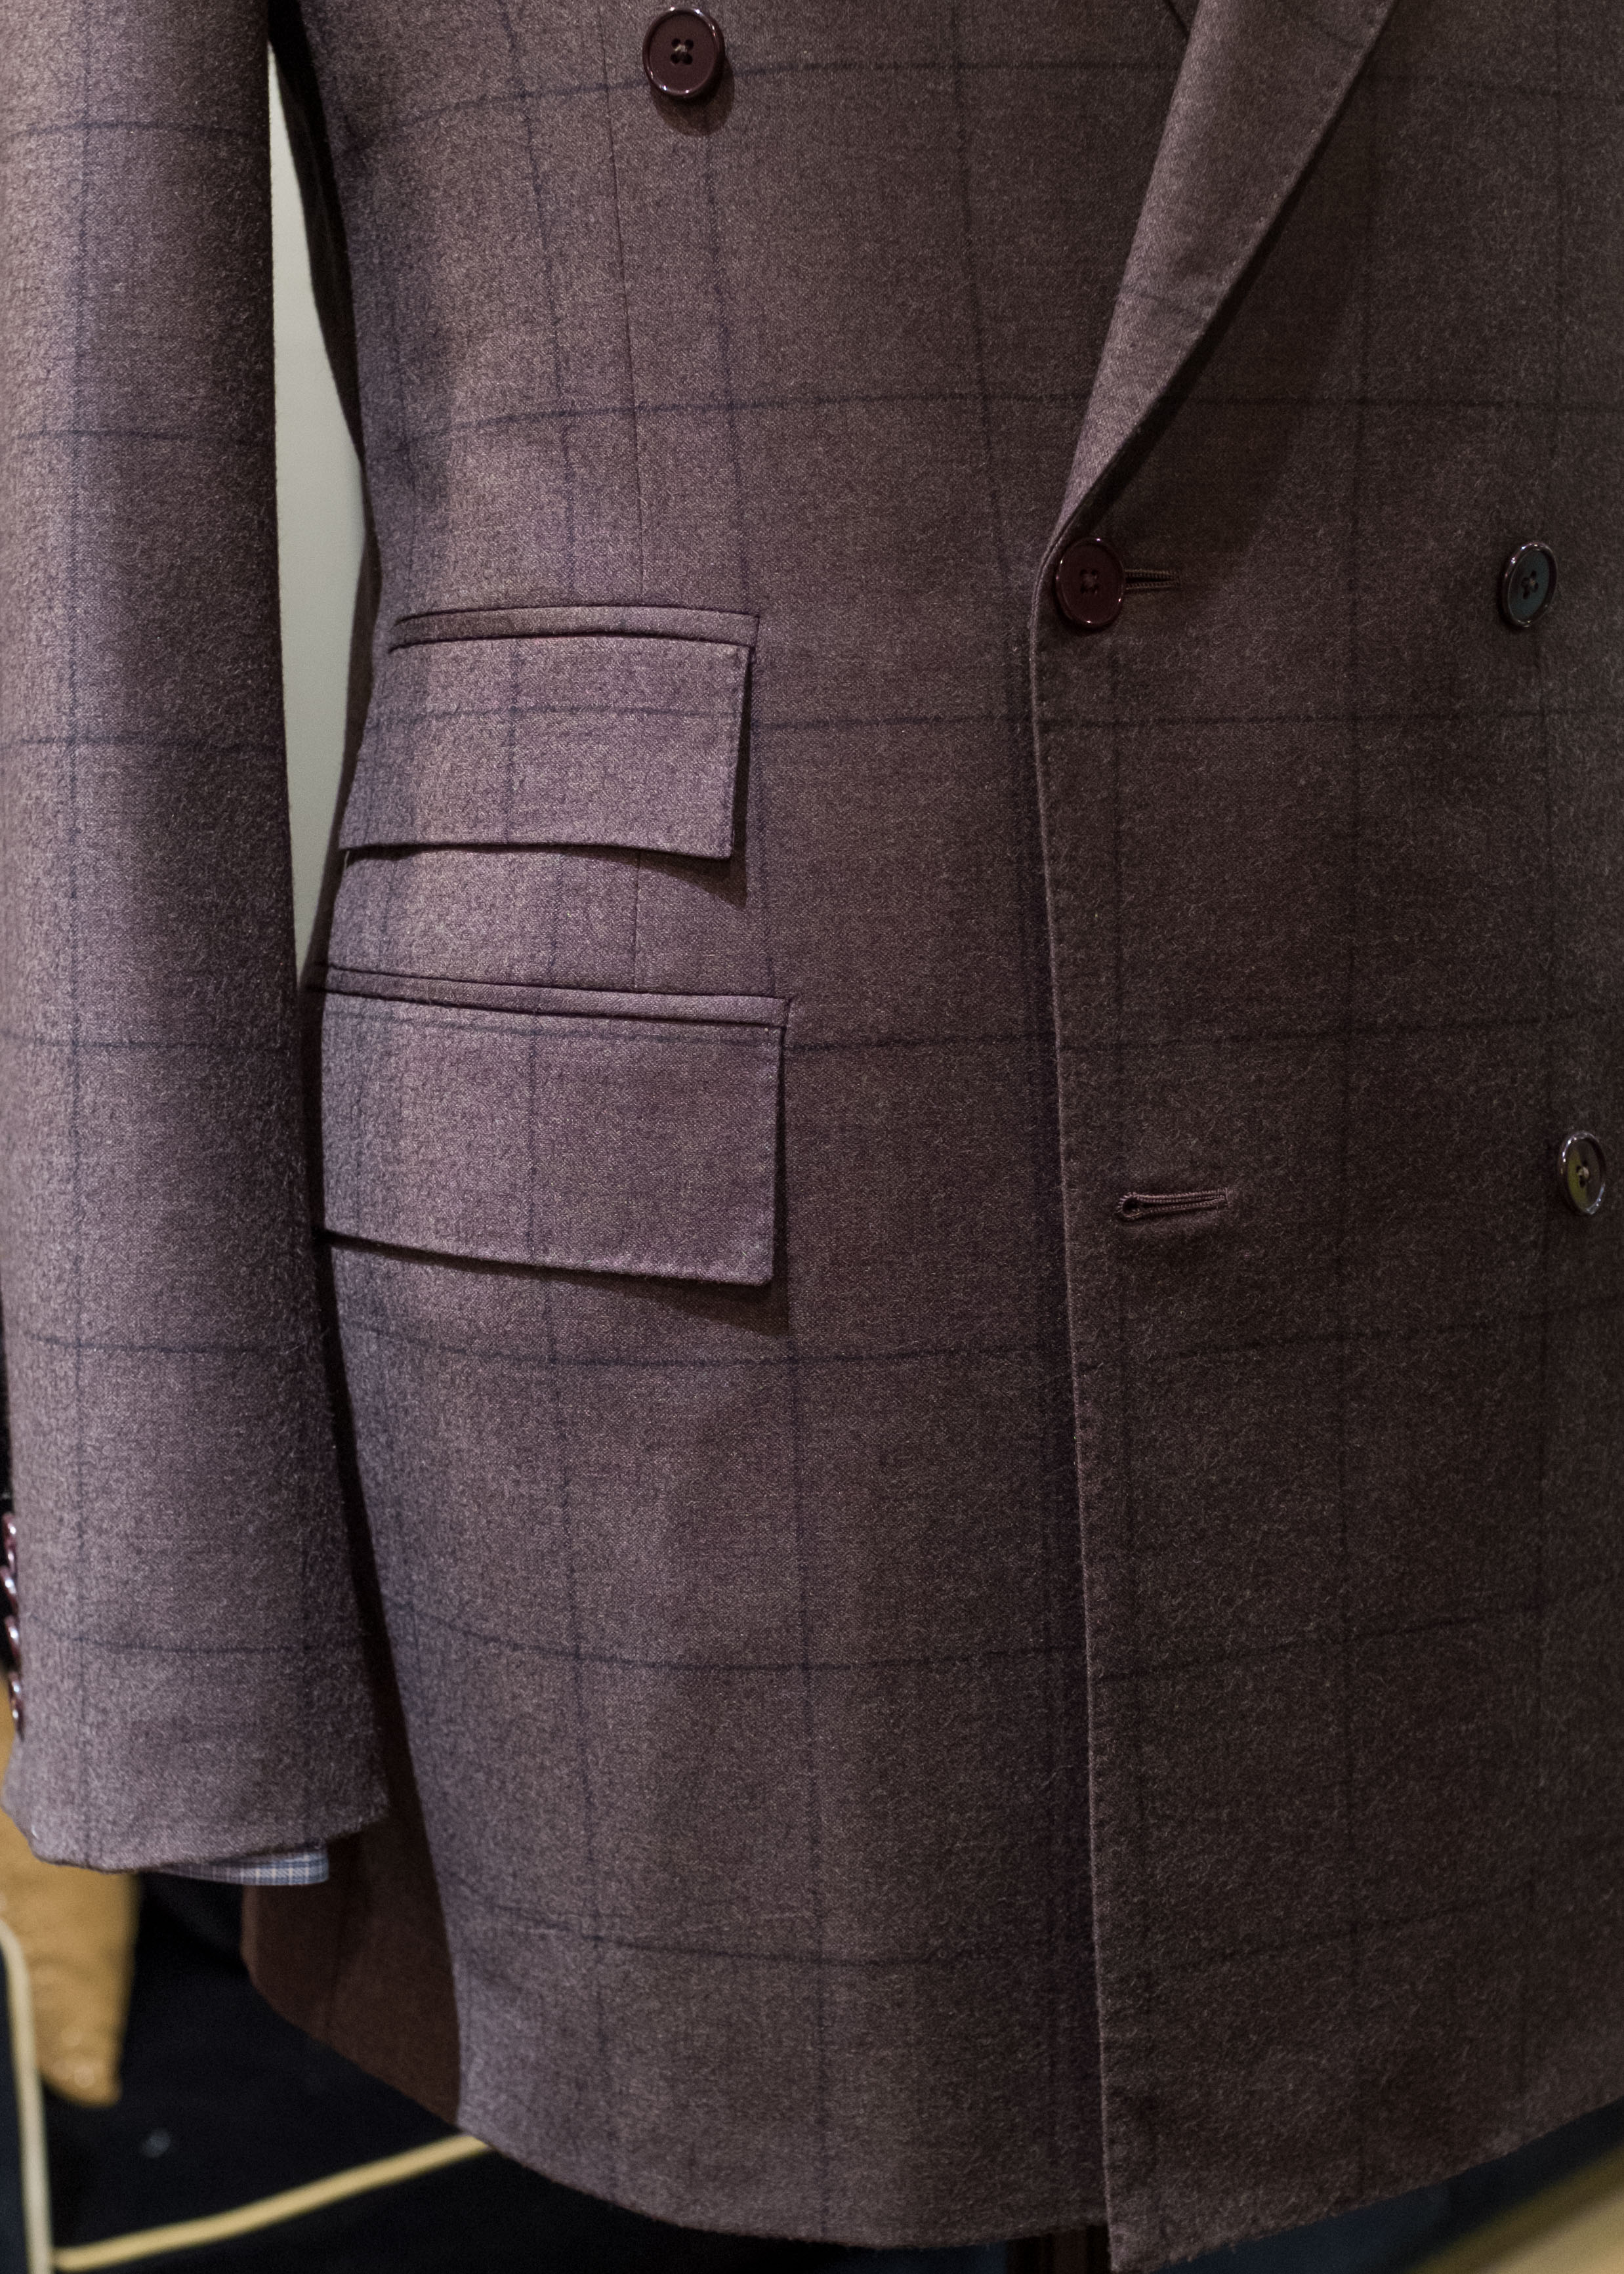 The sharp corners of these pocket flaps complement the squared front edges of this double-breasted suit jacket.